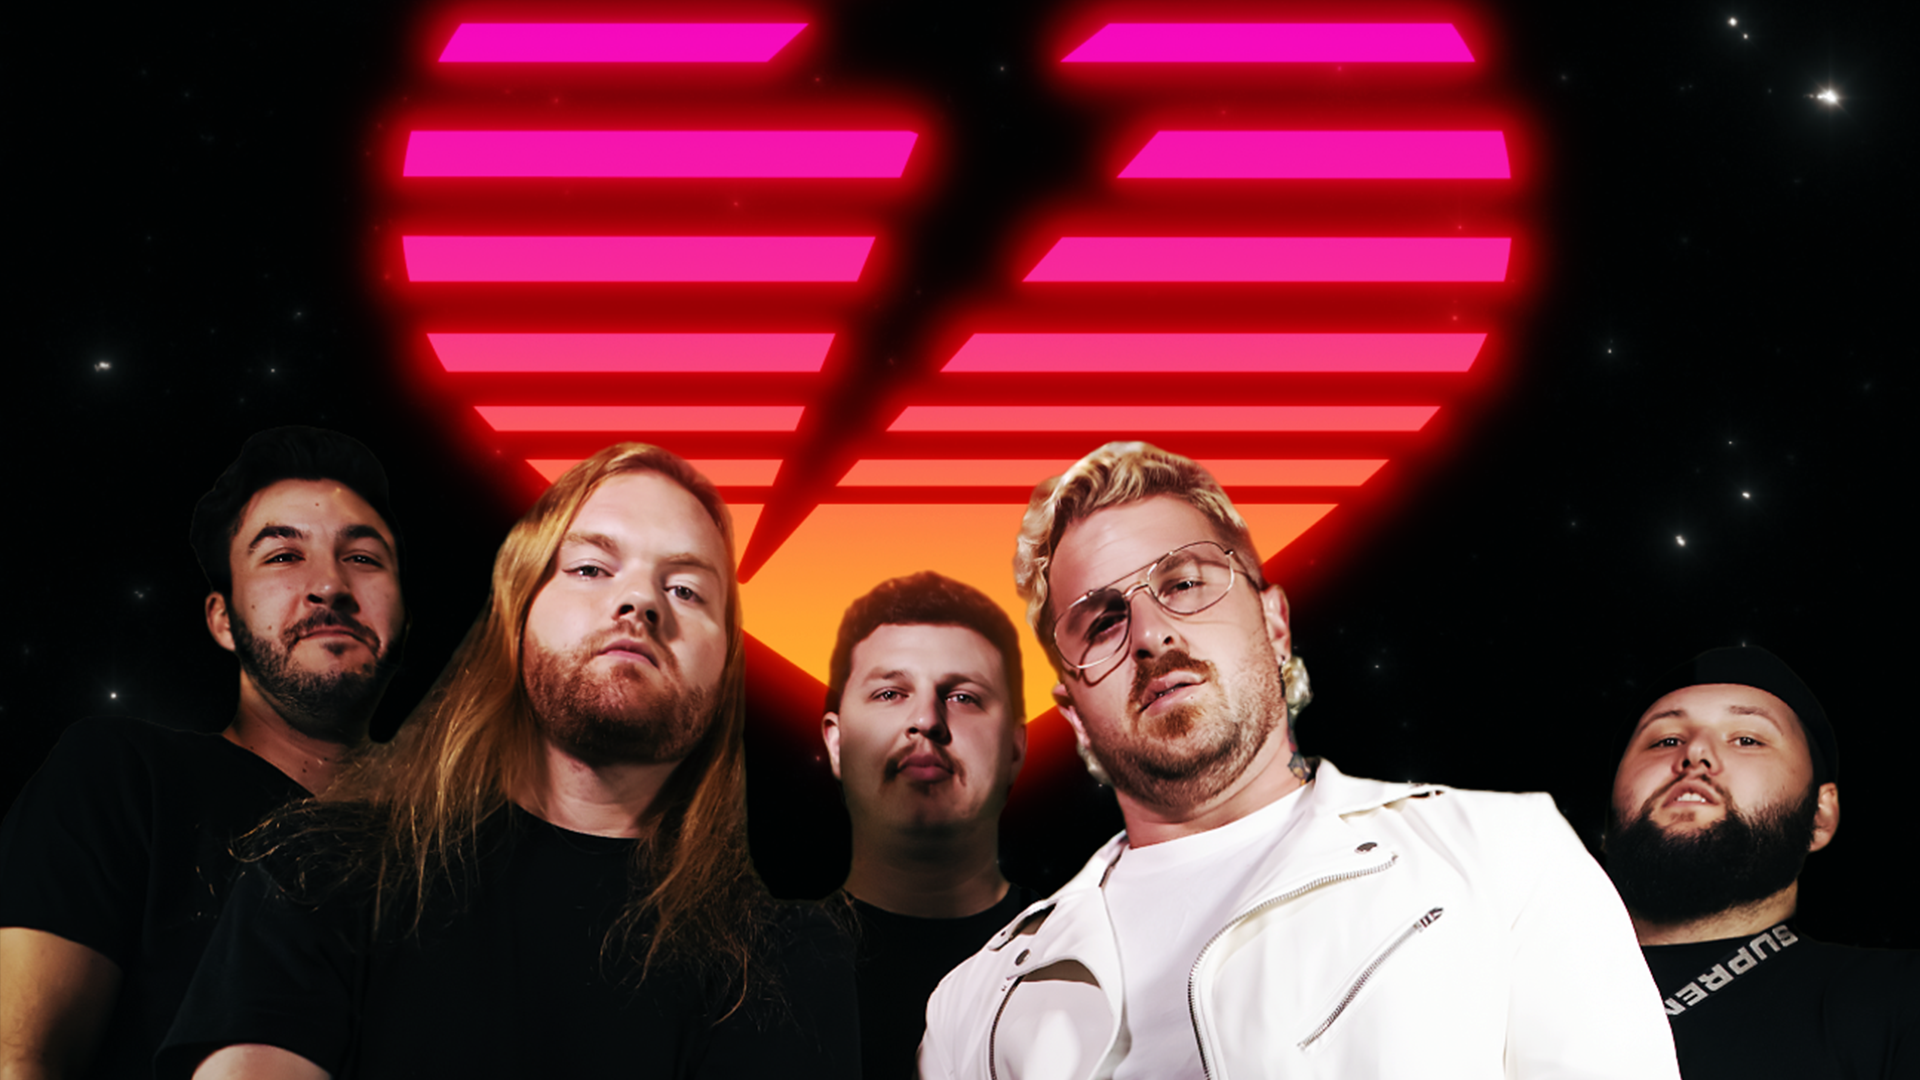 """Fronted by pro wrestler """"Outlandish Zicky Dice,"""" Heart to Heart signs with InVogue Records"""